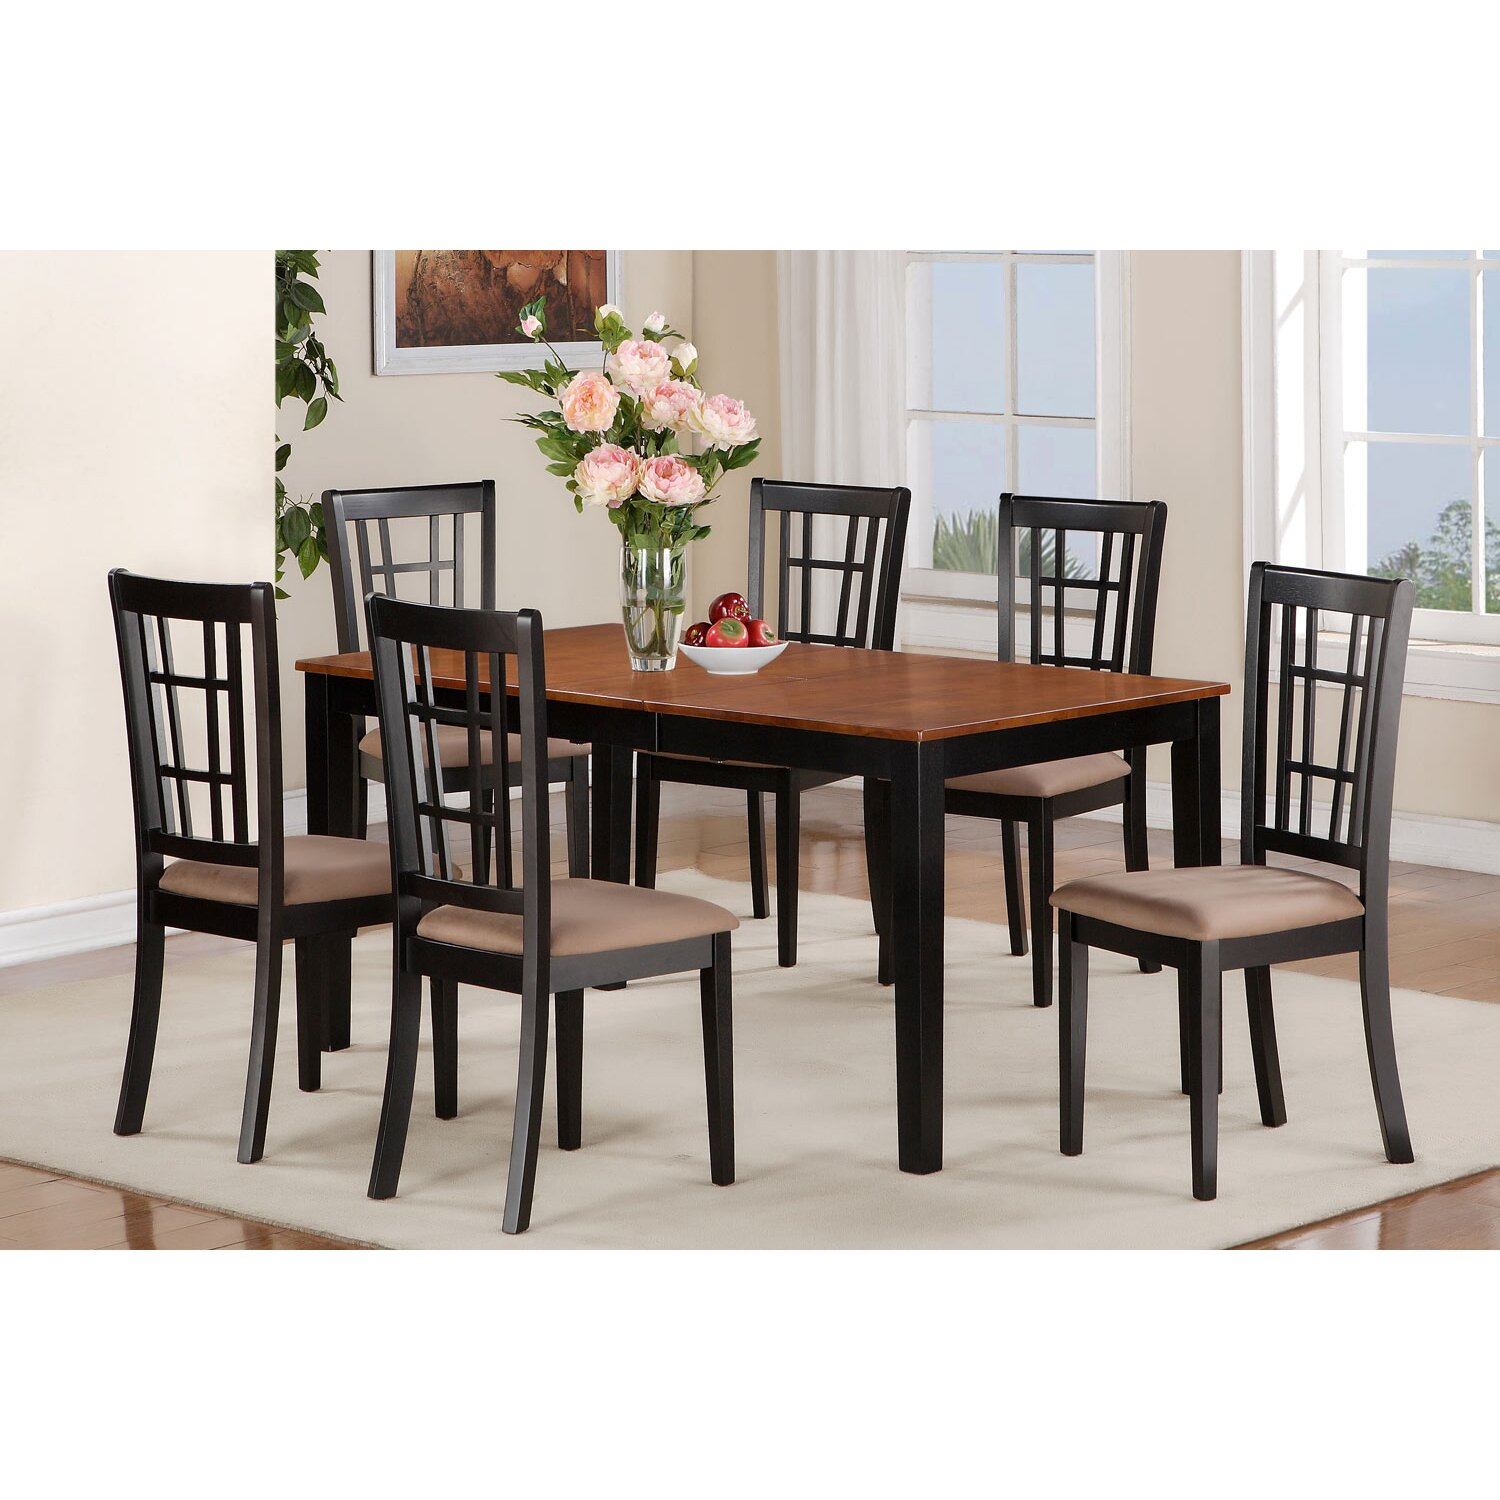 East west nicoli 7 piece dining set reviews wayfair for Kitchen dining room furniture